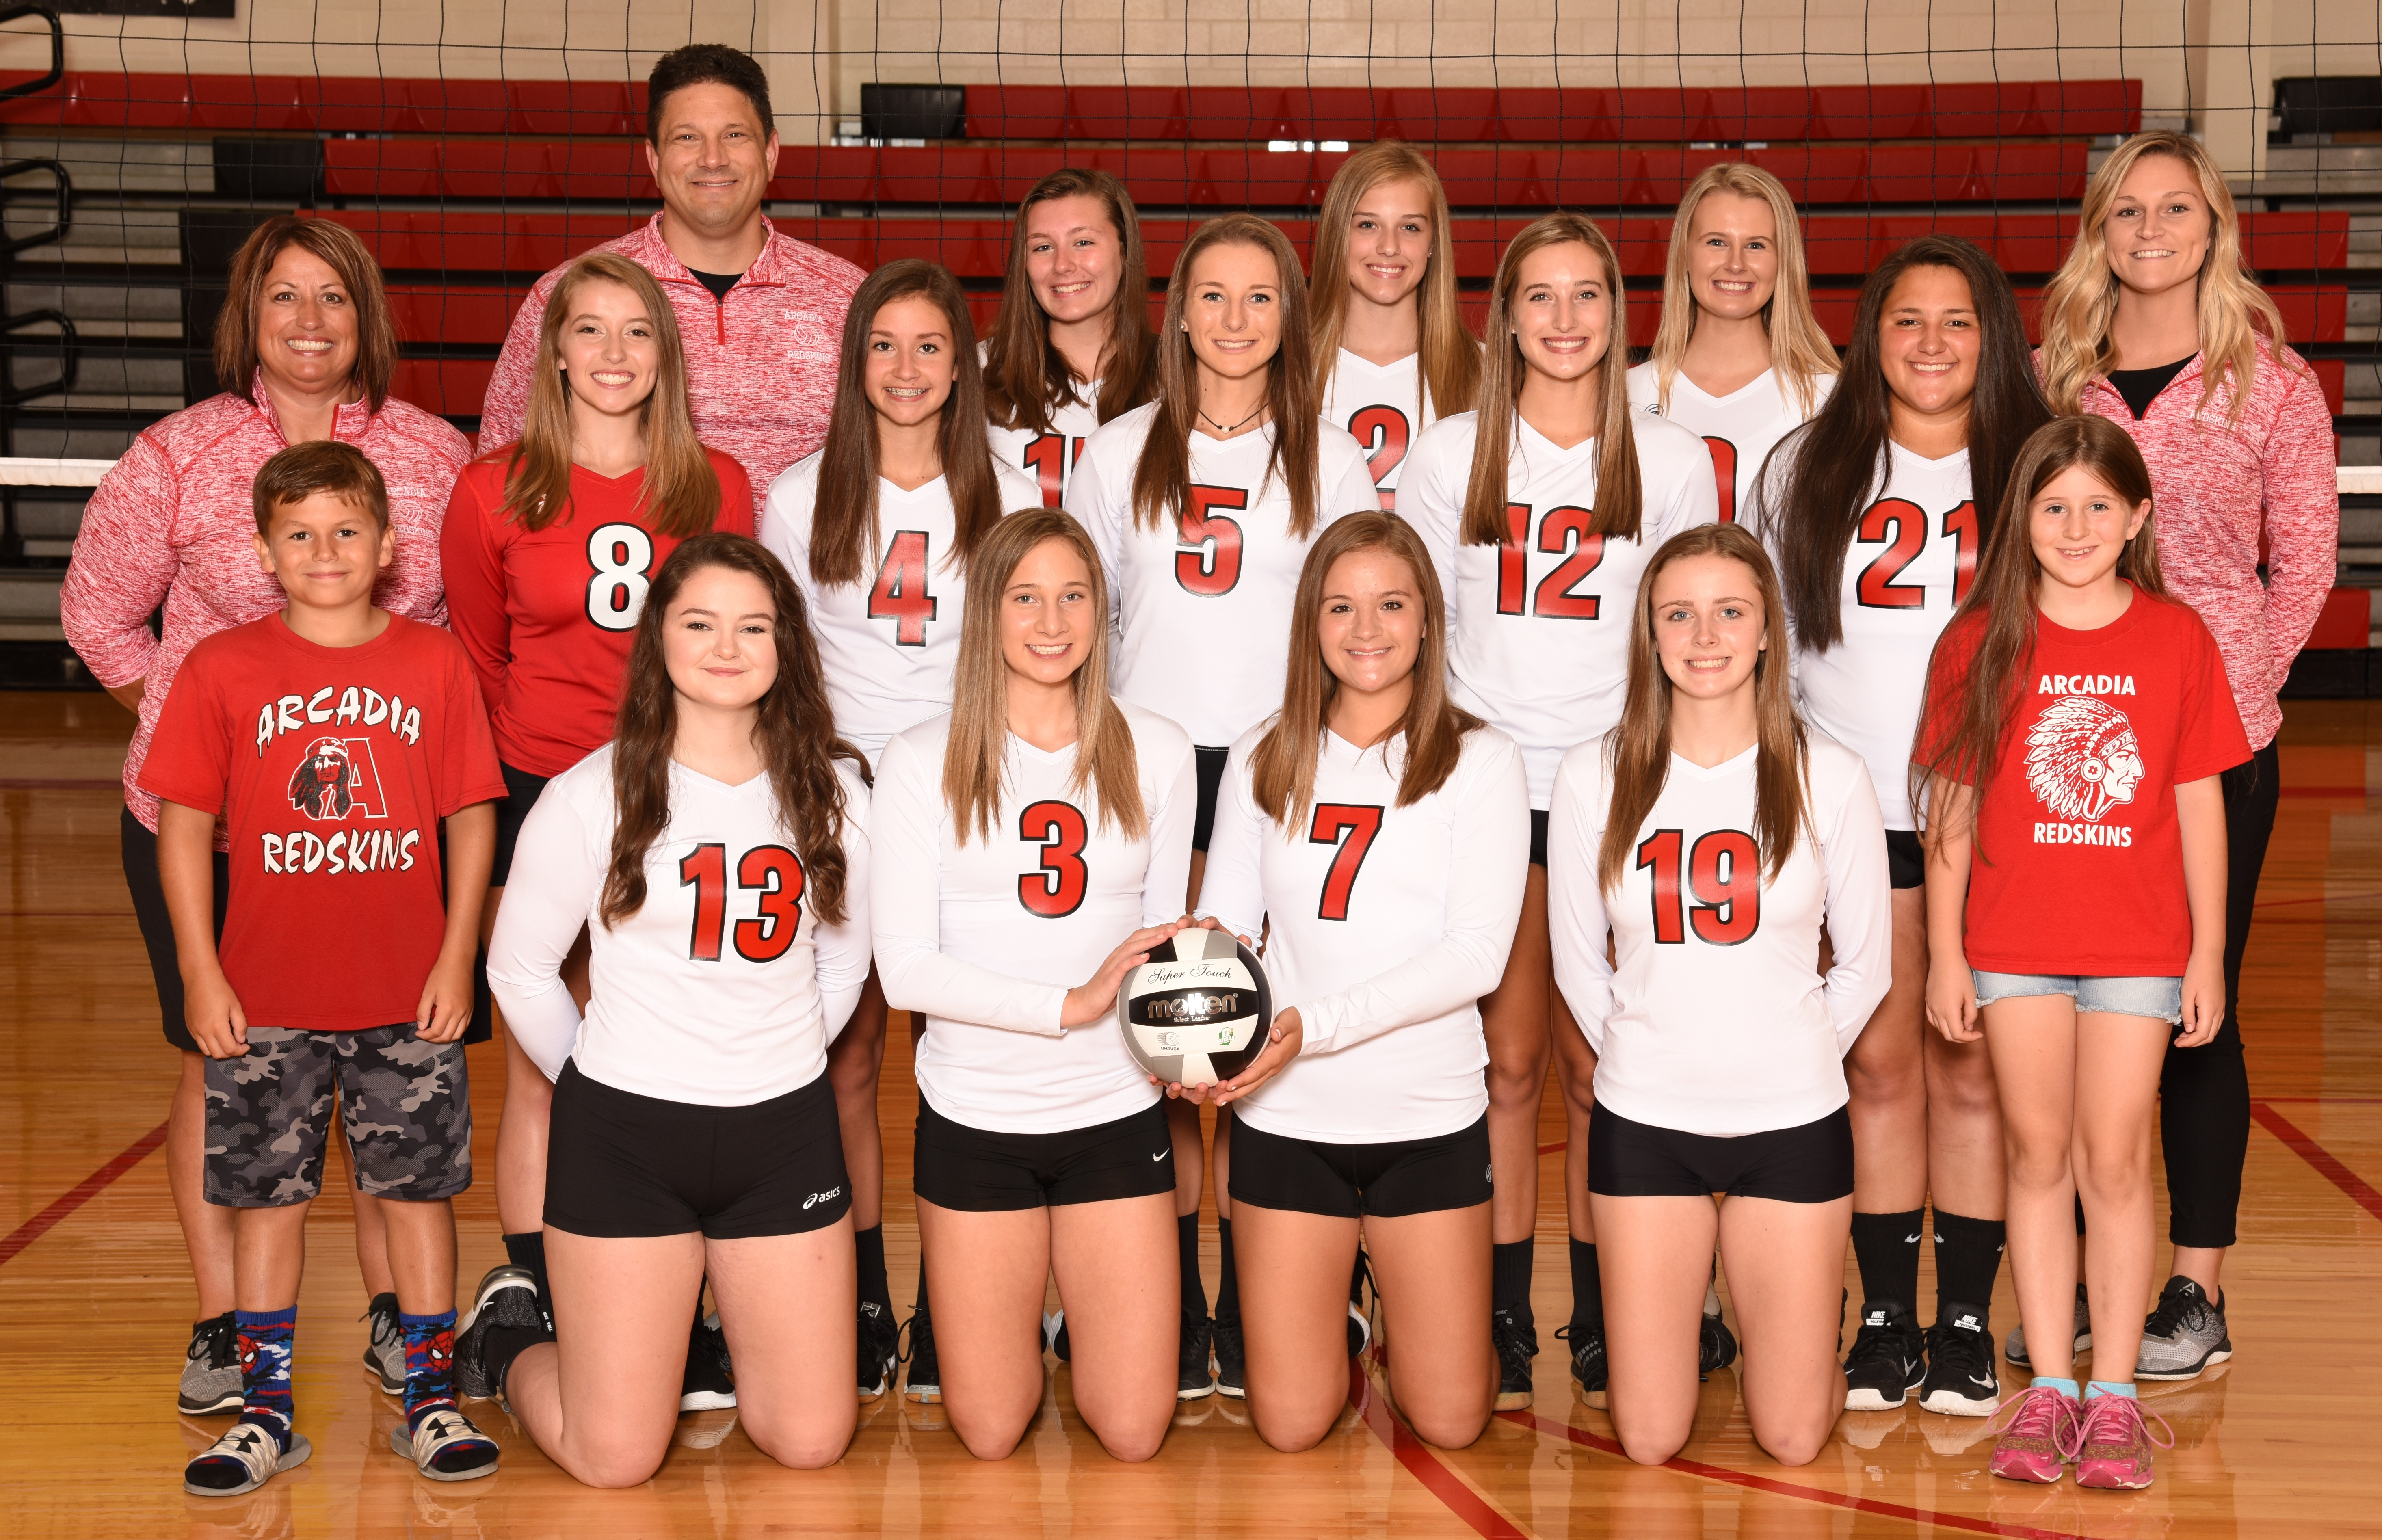 Arcadia Redskins 2018 Varsity Volleyball Team